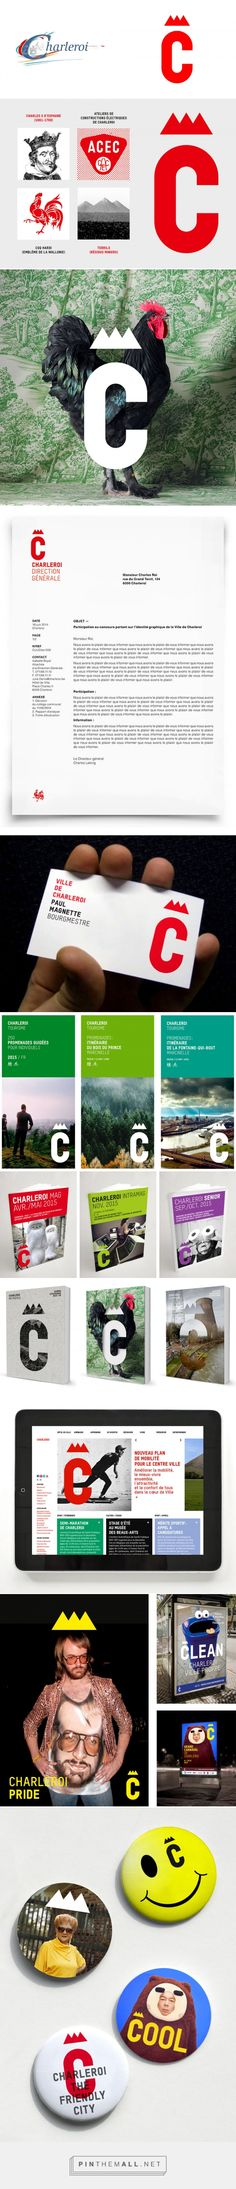 Brand New: New Logo and Identity for Charleroi by Pam et Jenny... - a grouped images picture - Pin Them All